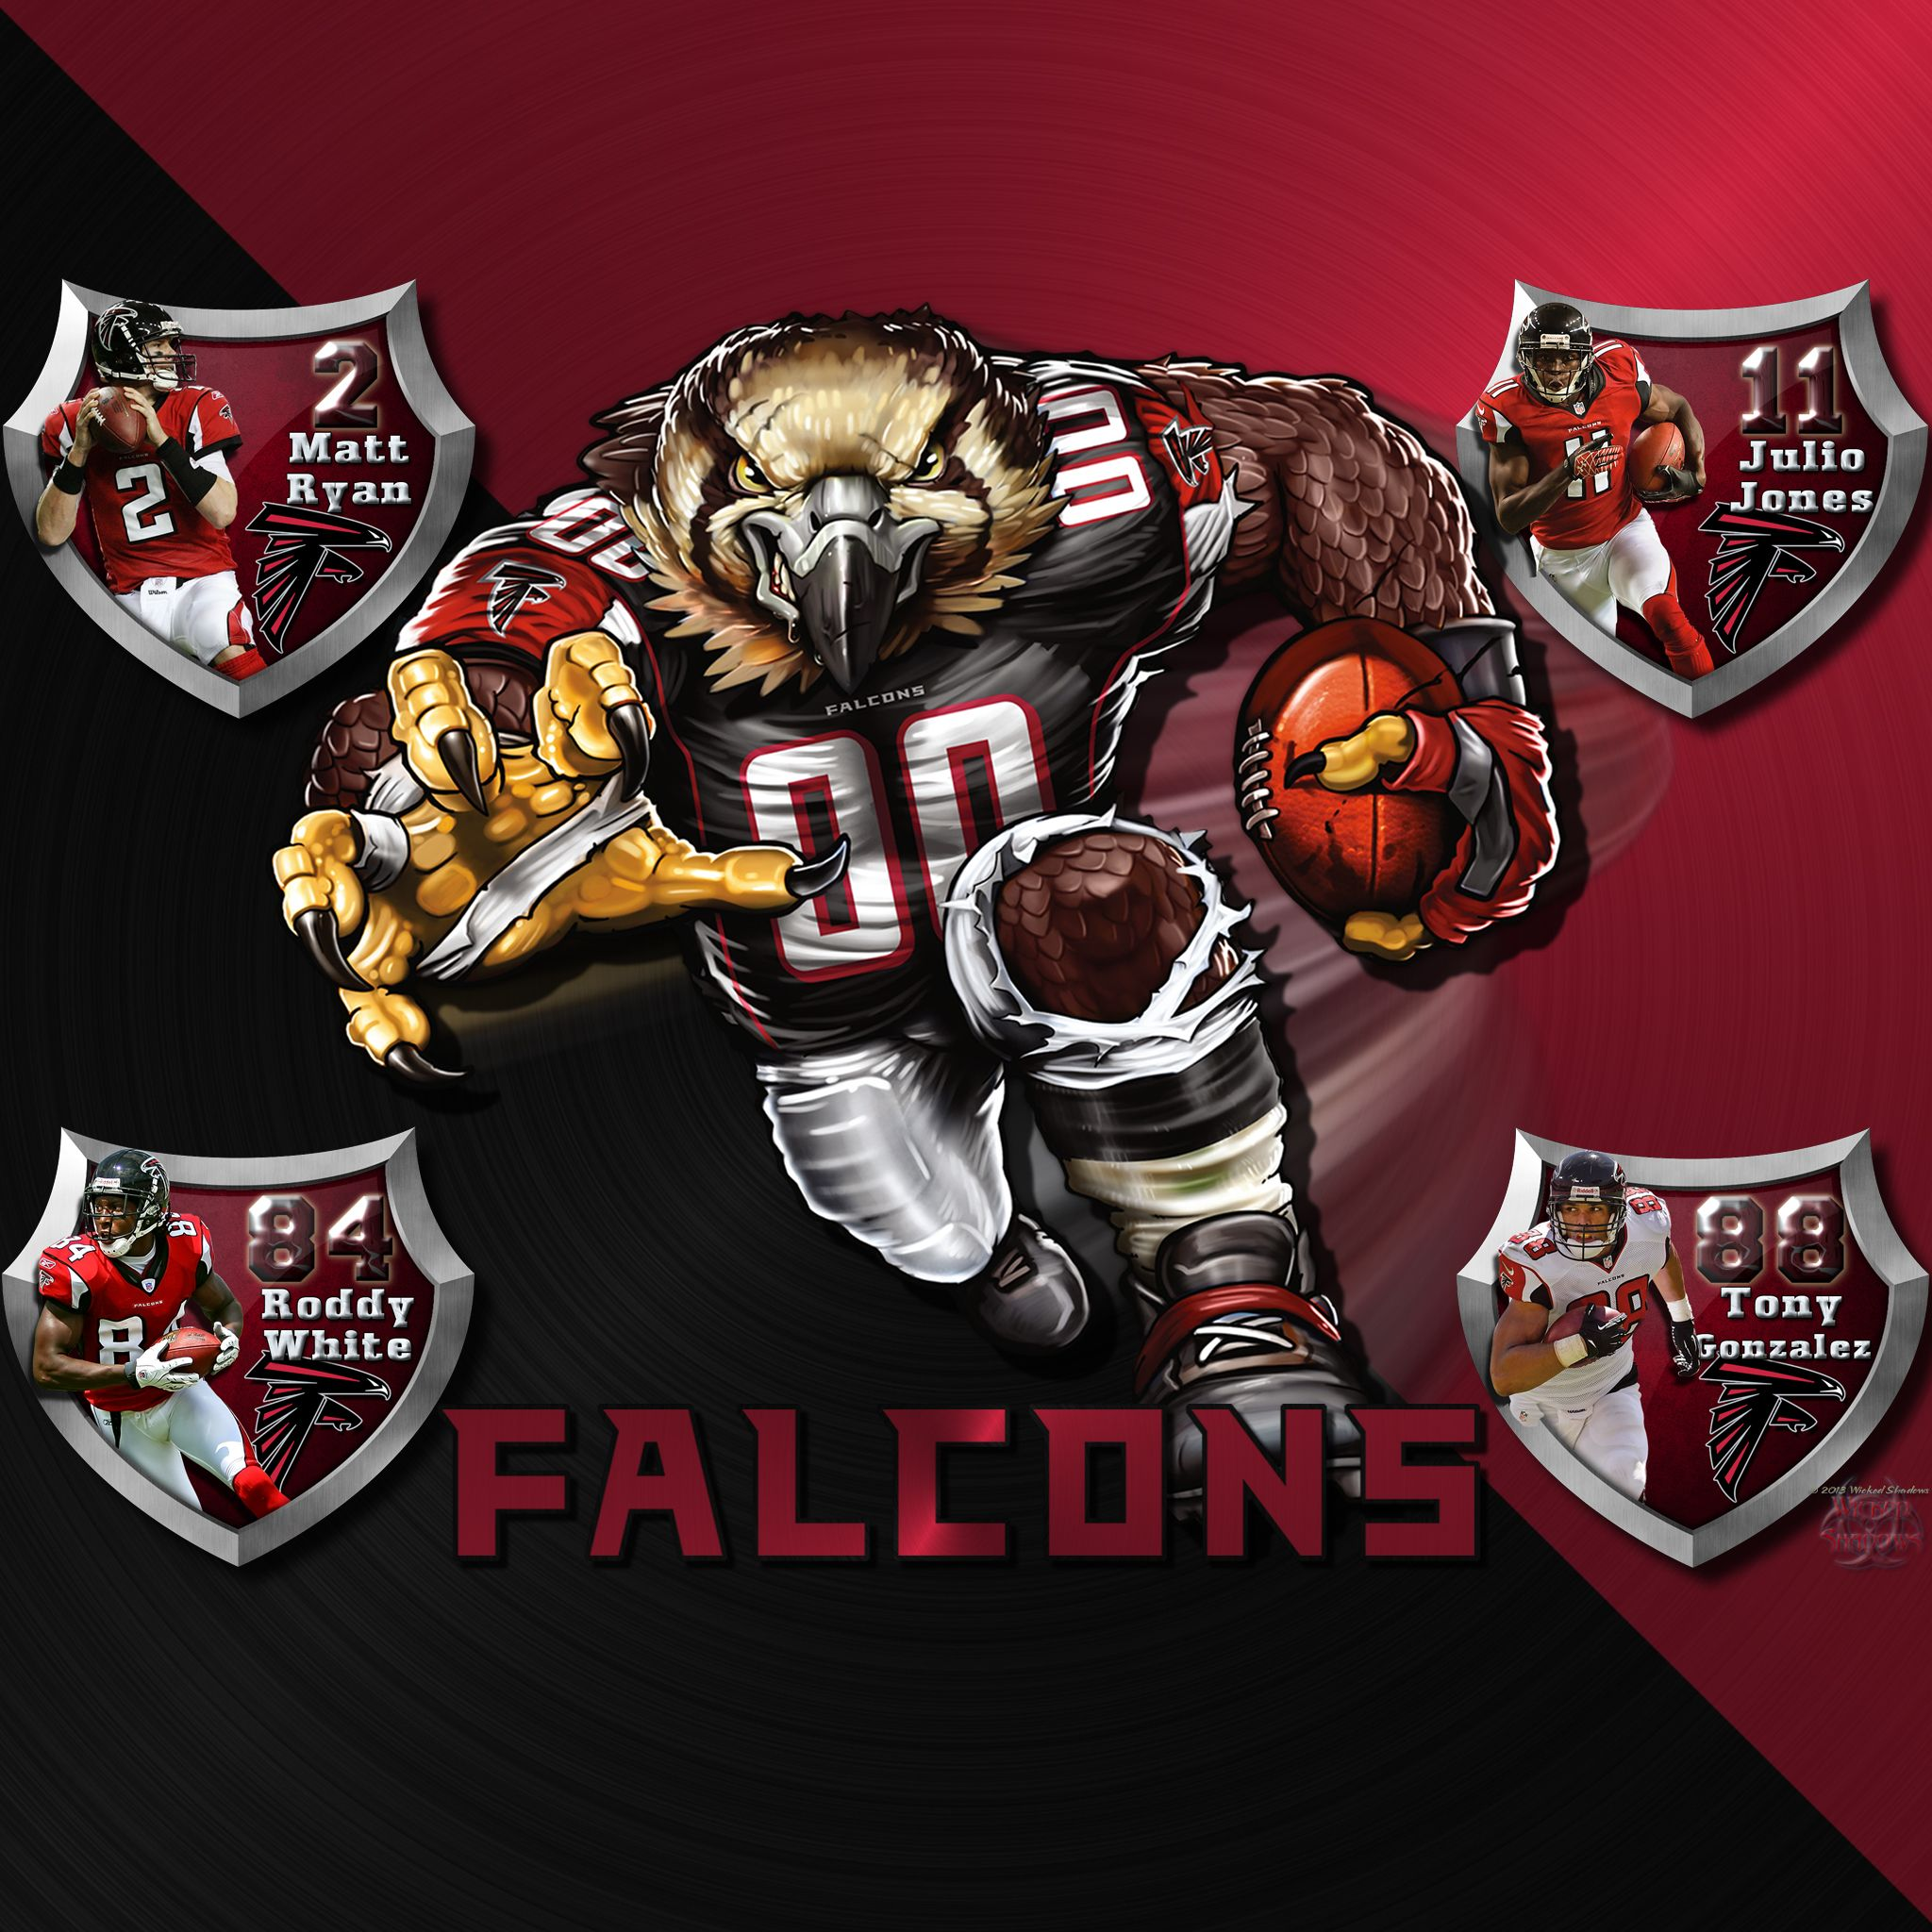 Atlanta Falcons Logo Wallpaper Iphone Ipod Touch Ipad Android Universal Tablet Atlanta Falcons Logo Atlanta Falcons Wallpaper Falcons